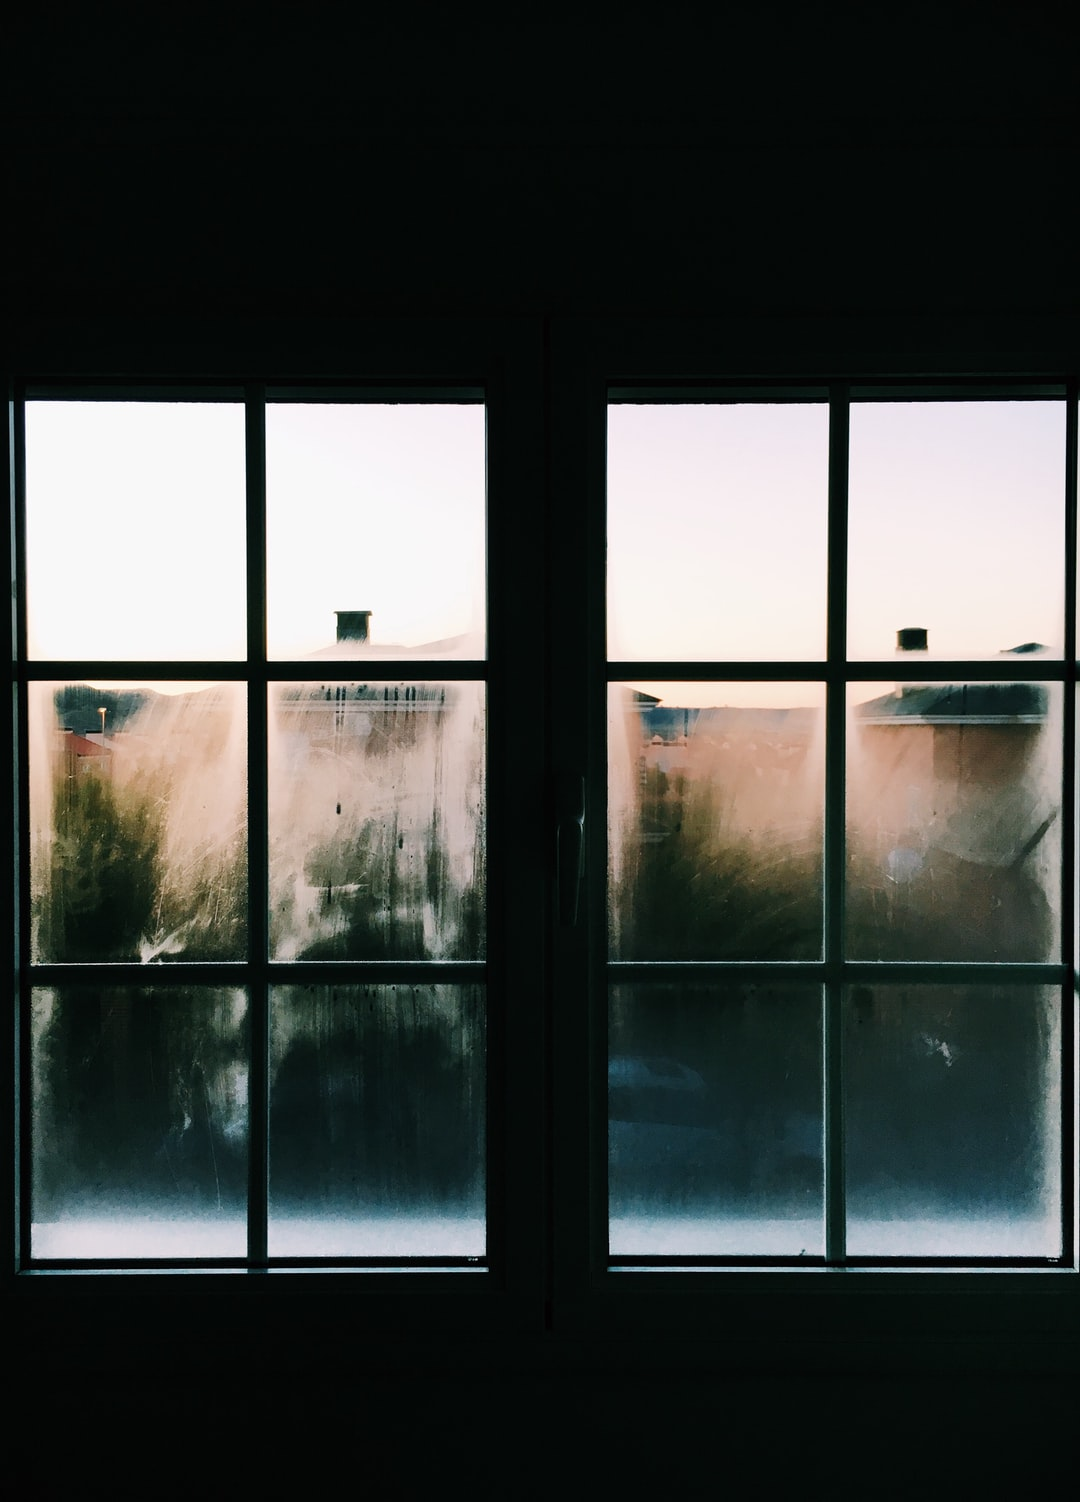 Window pictures download free images on unsplash for Window design 4 by 4